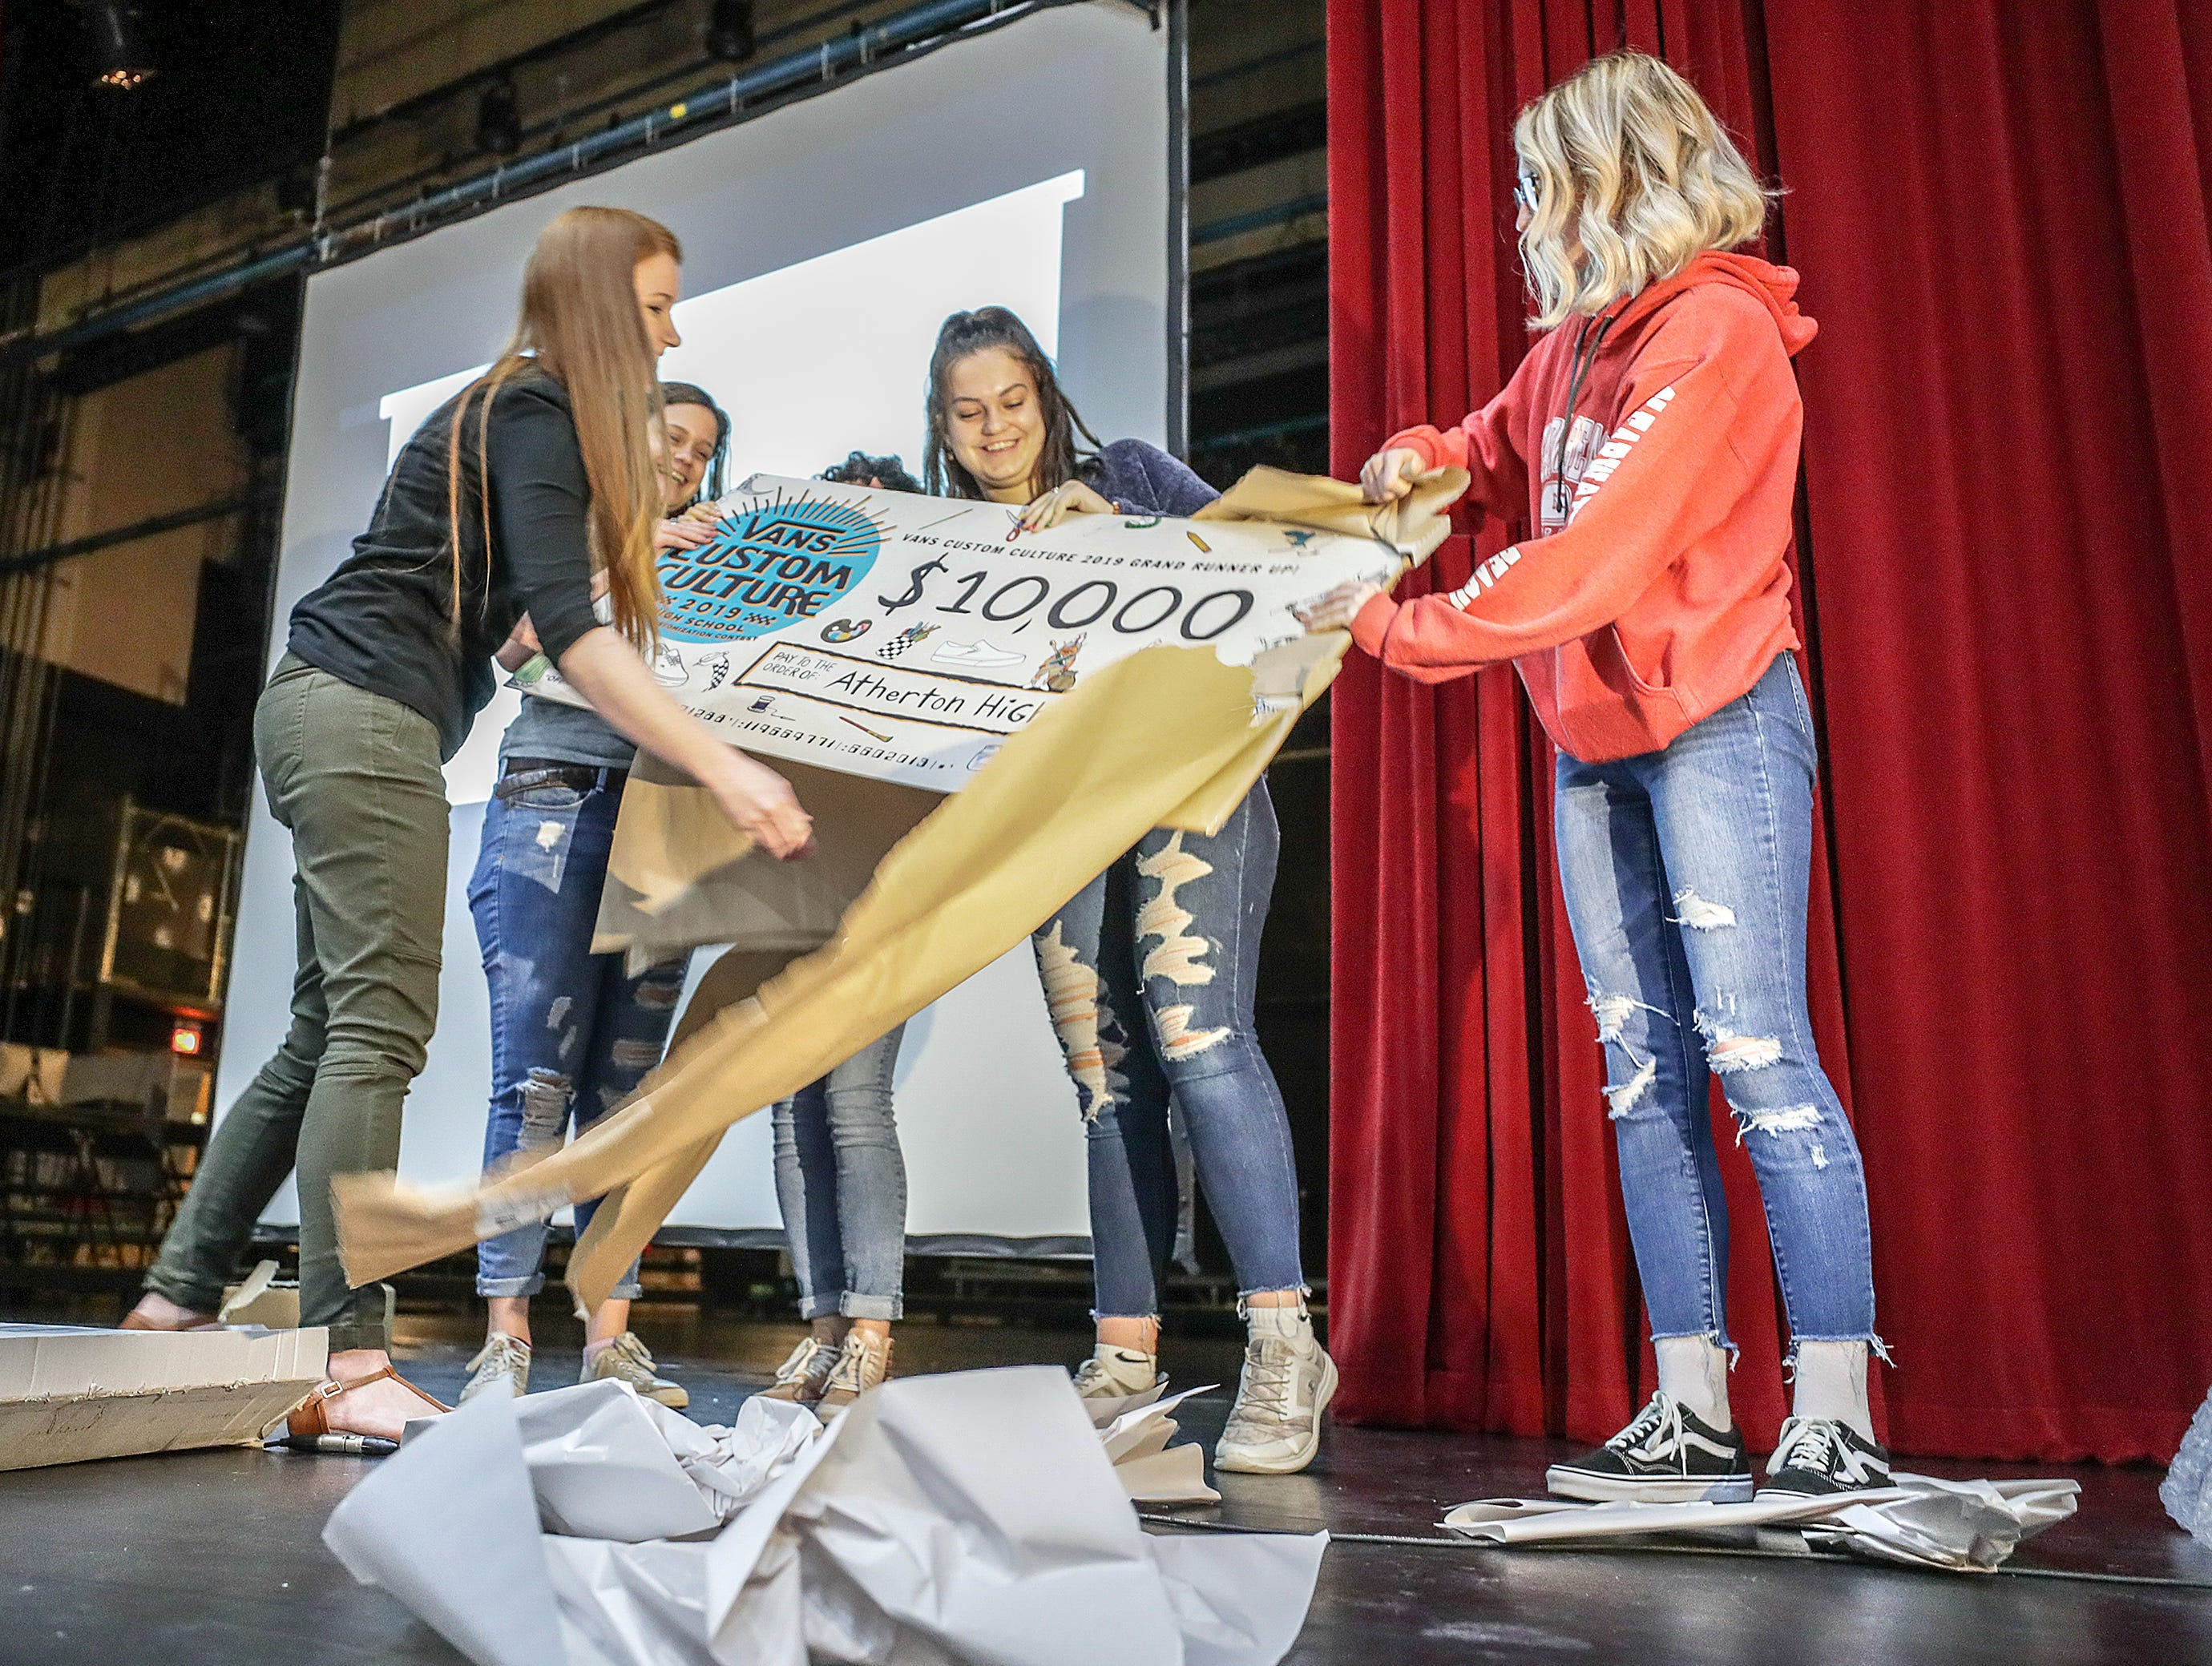 Atherton students unwrap a check from Vans as part of the Custom Culture contest.  The contest had students use the distinctive footwear to design shoes that depict their state.  Atherton was one of the runner ups and received $10,000 from Vans.May 14, 2019